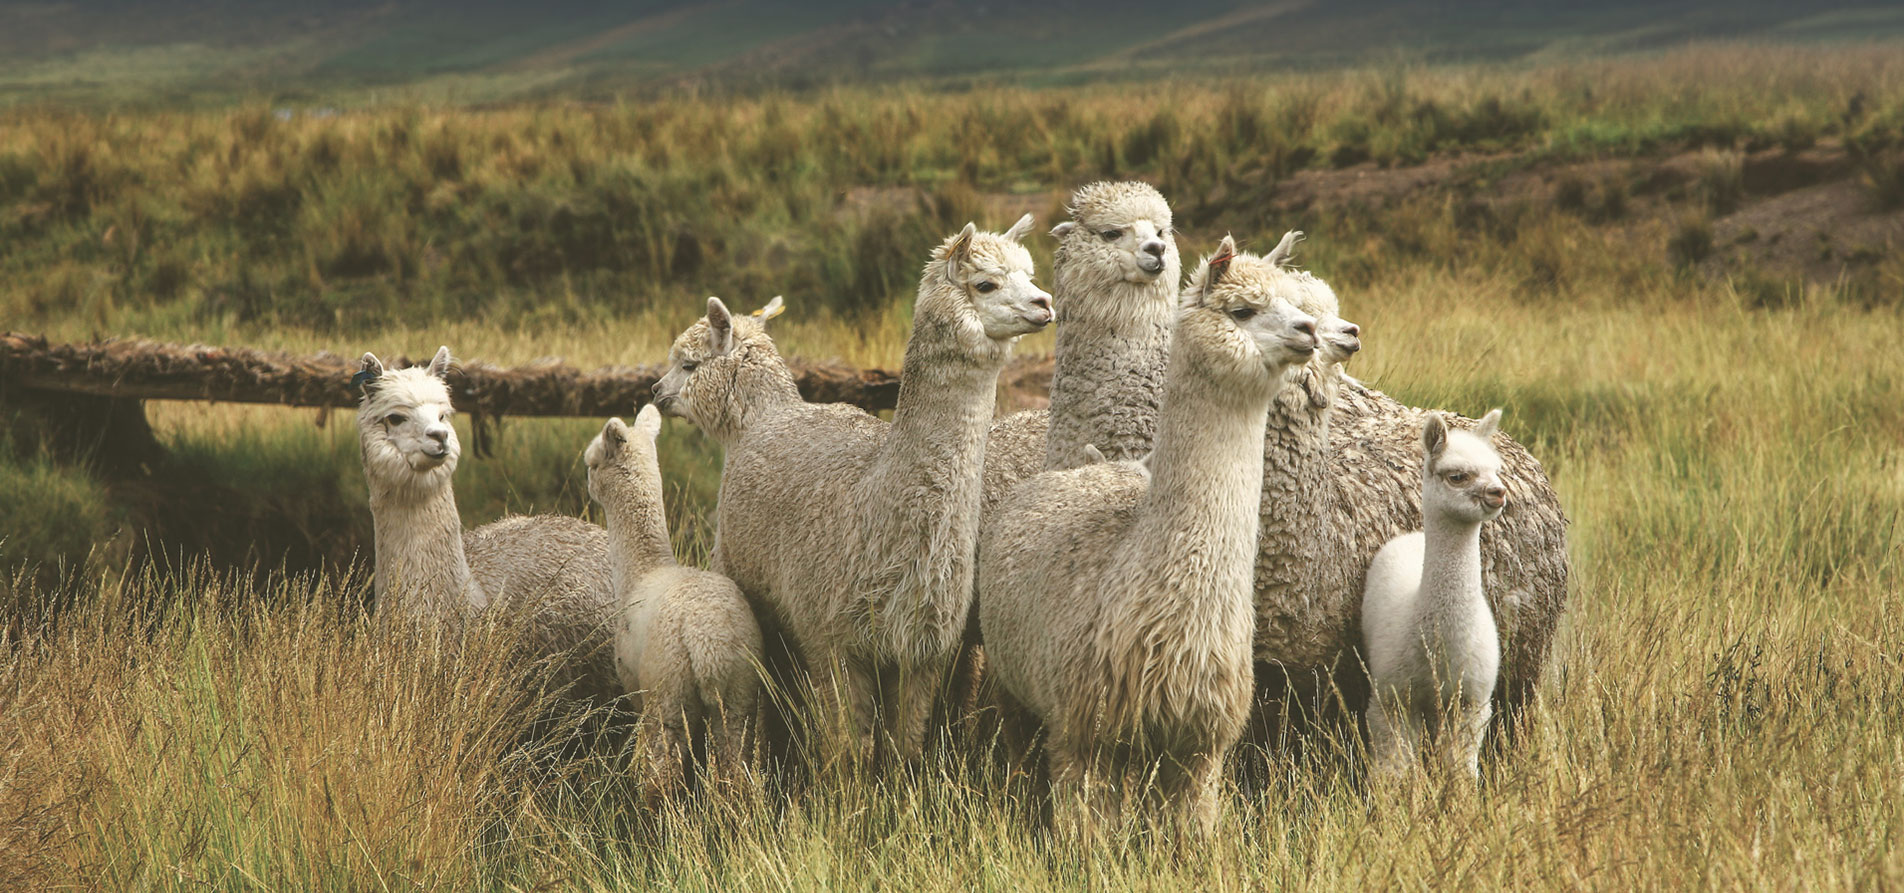 Alpaca — Trade Commission of Peru in the Netherlands